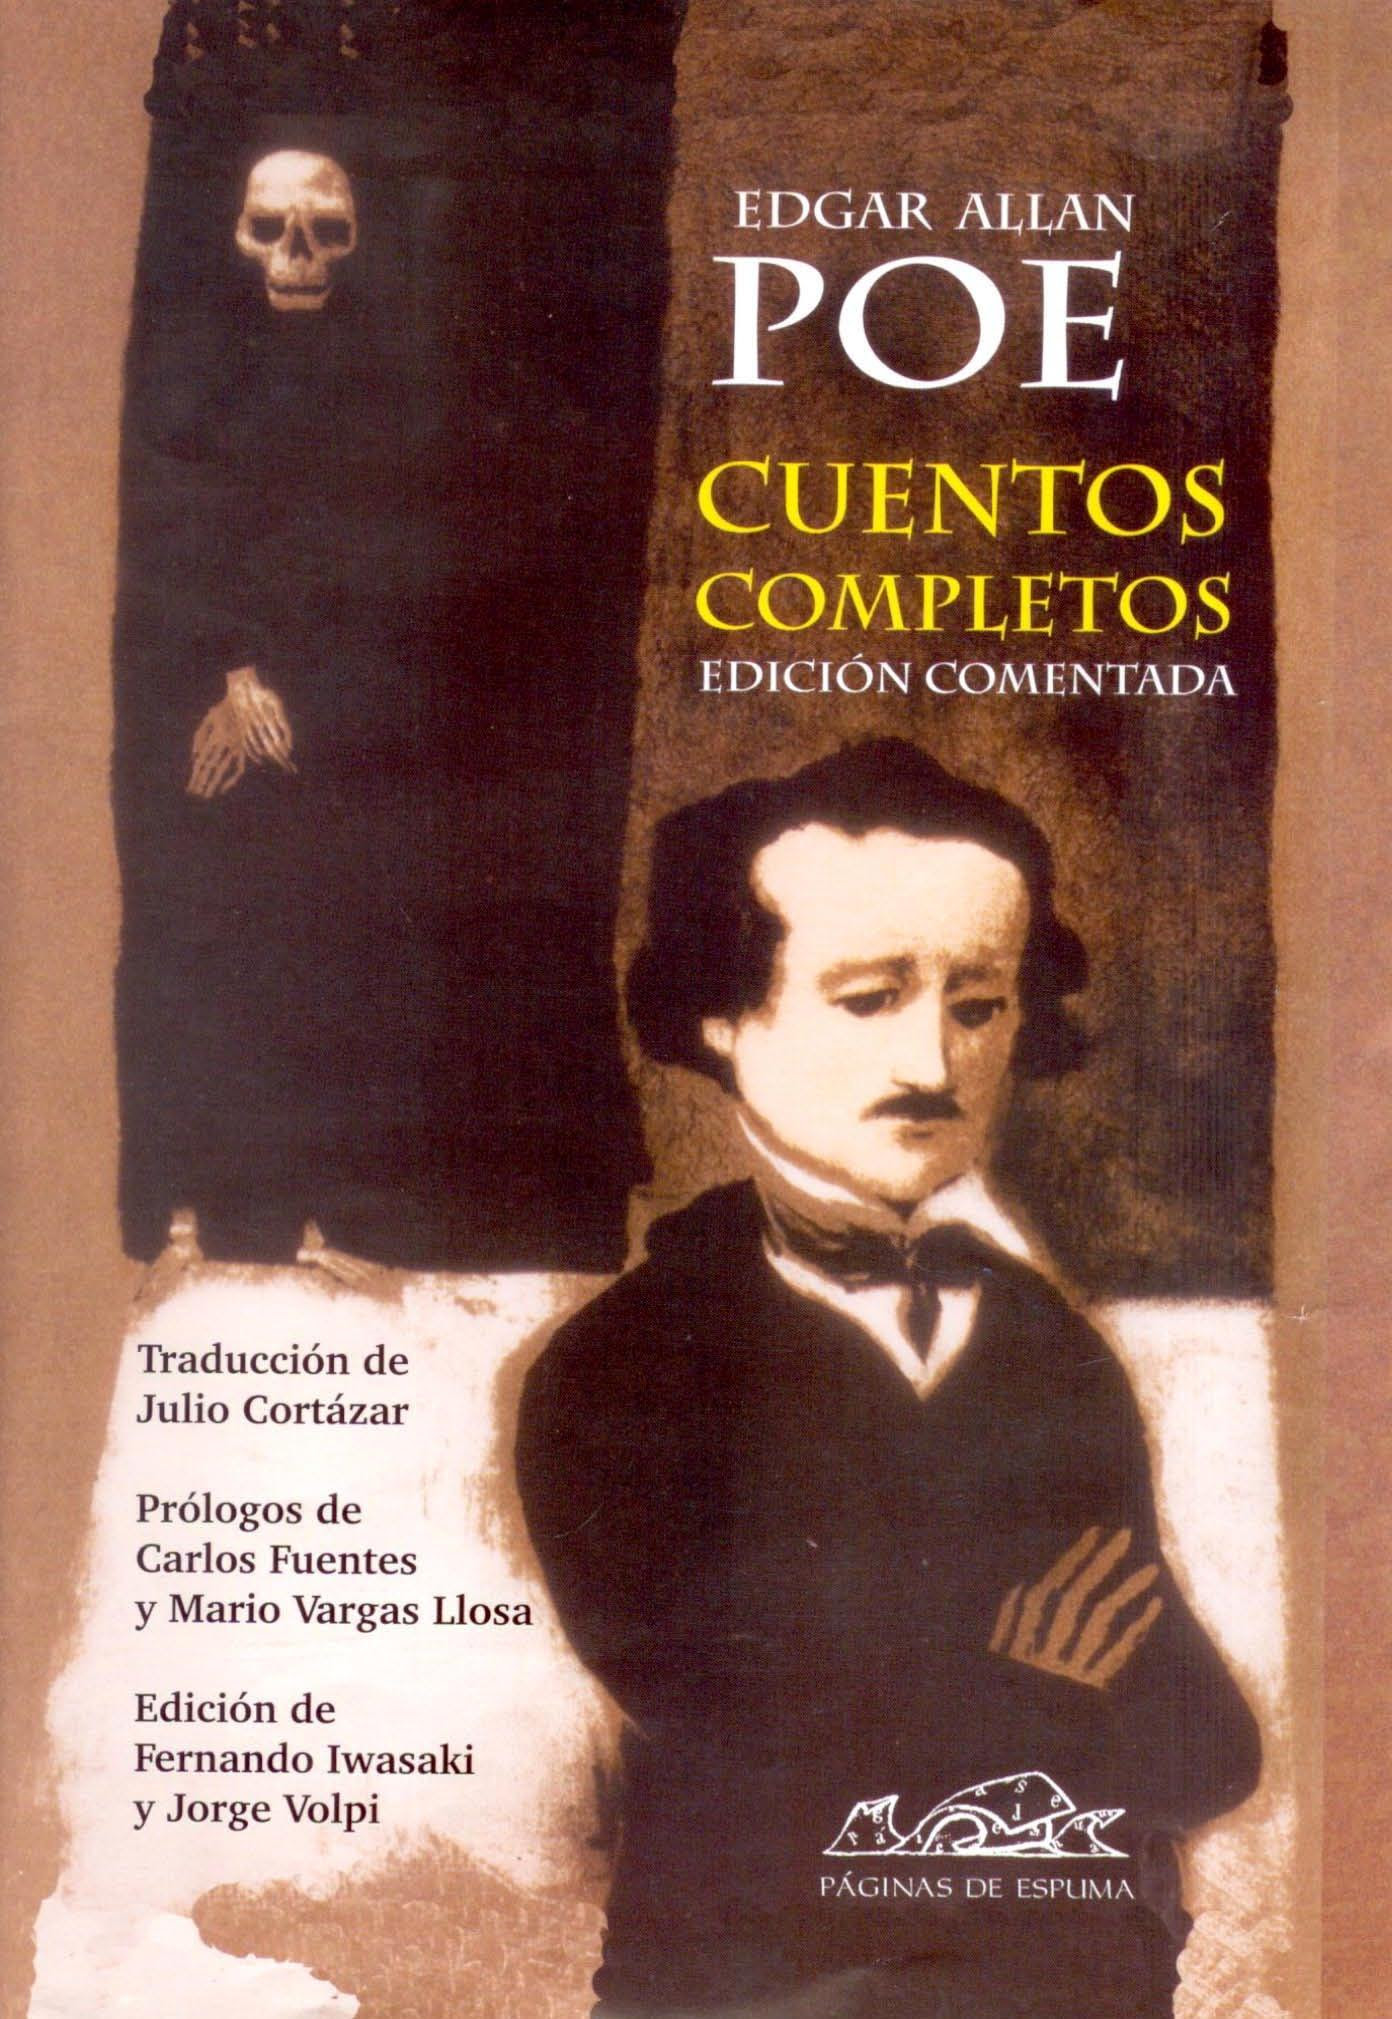 cuentos-completos-Edgar-Allan-Poe-book-tag-inside-out-opinion-literatura-nominaciones-blogs-blogger